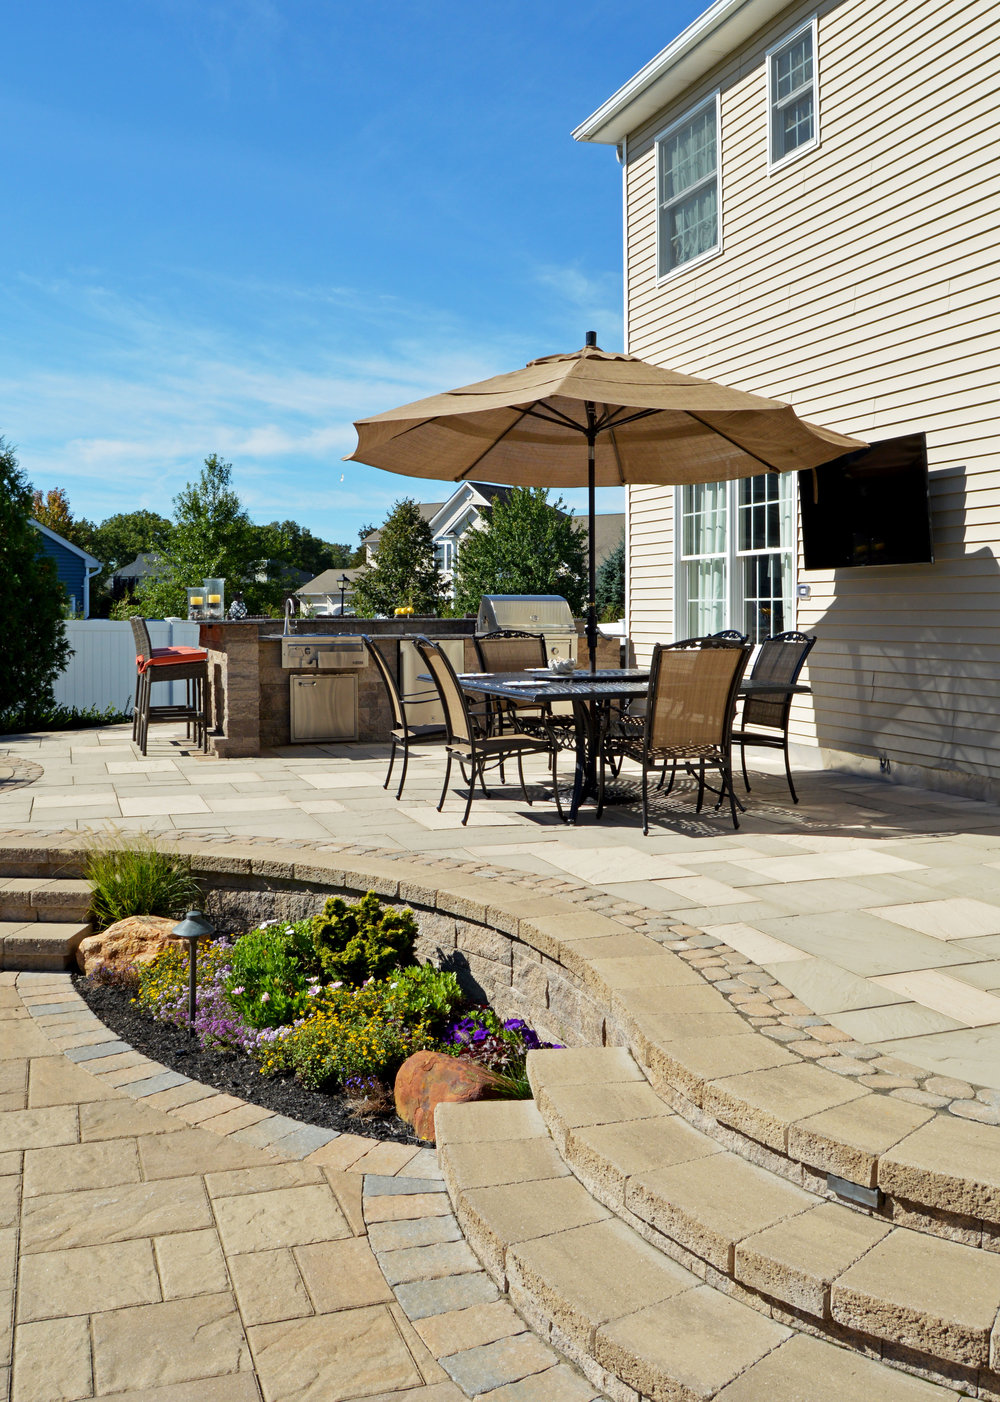 Smithtown, NY outdoor dining on a patio